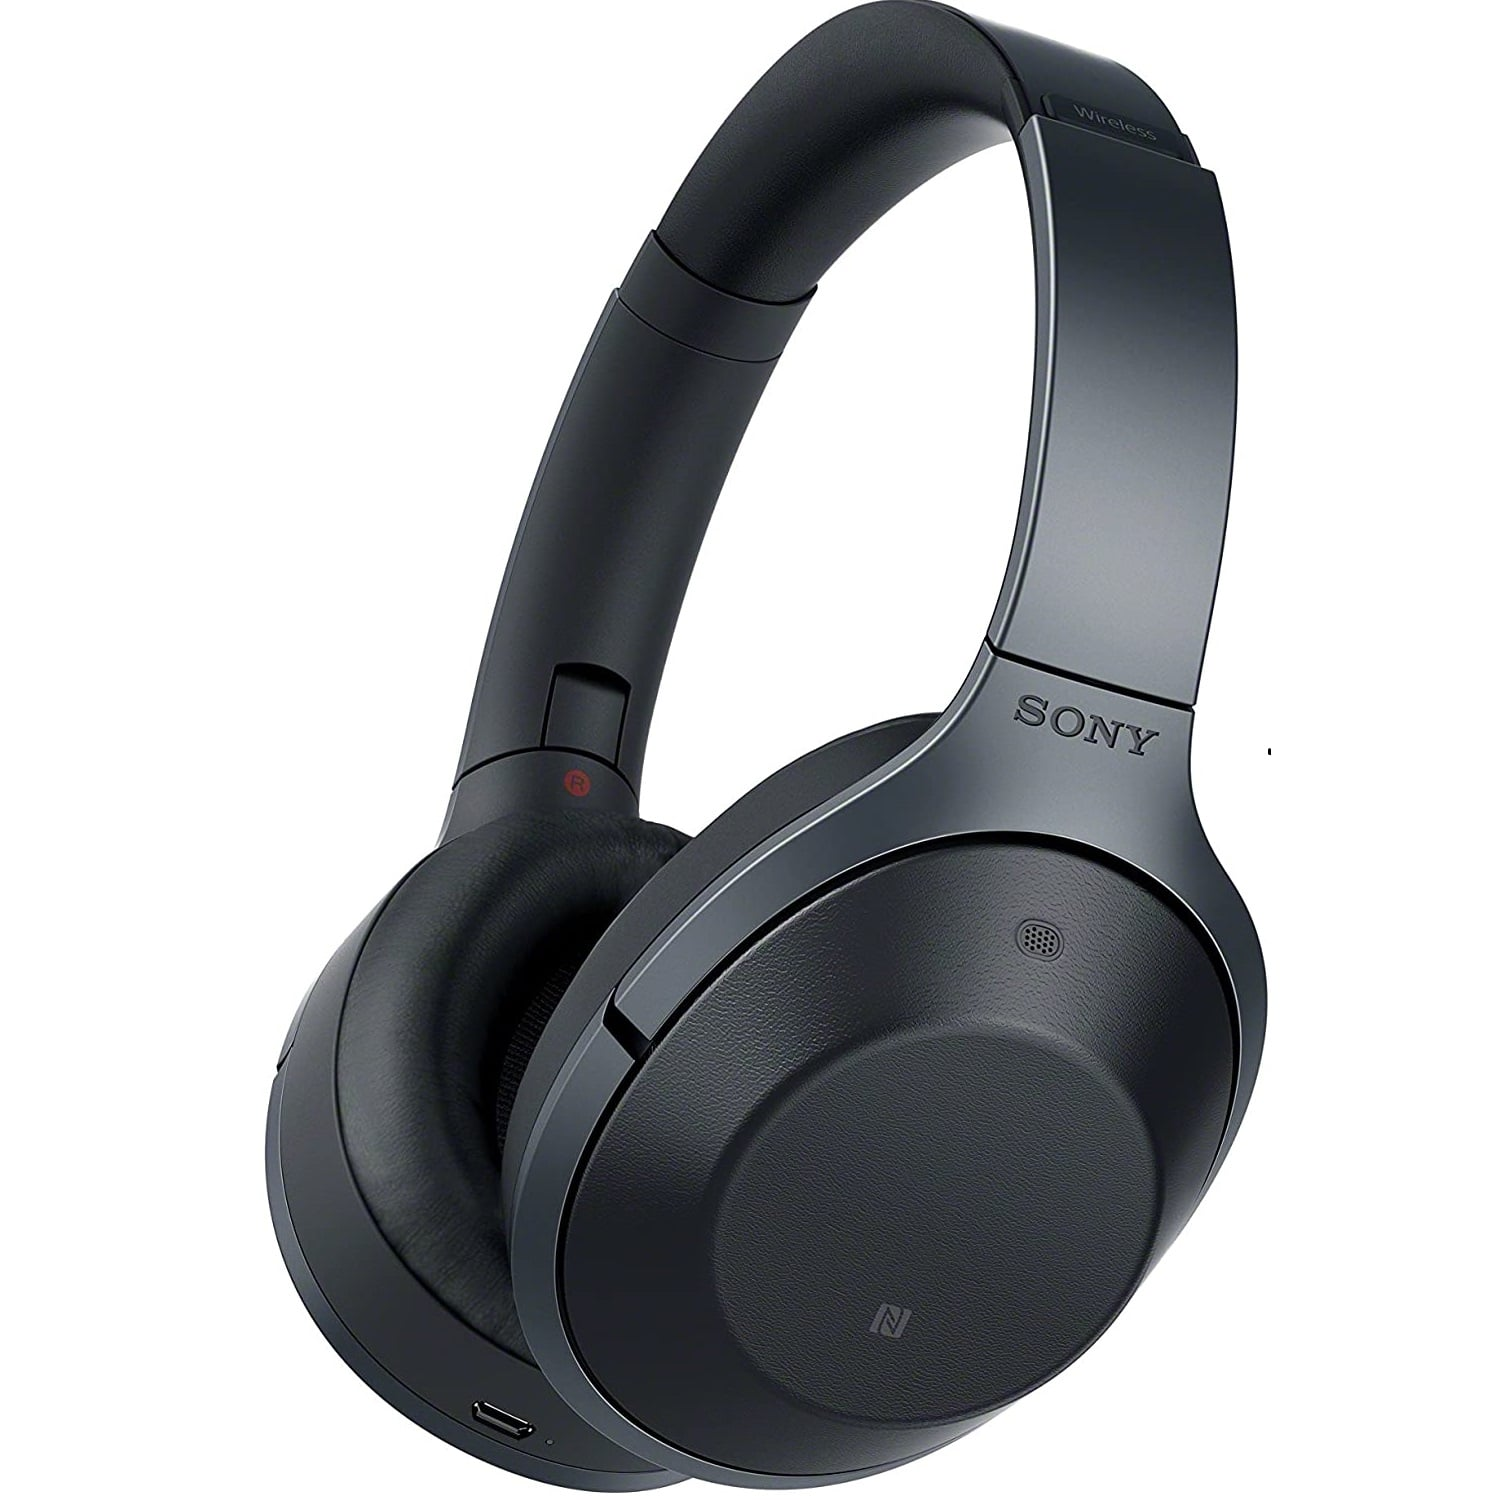 Sony MDR-1000X Wireless Headphones: A Complete Review